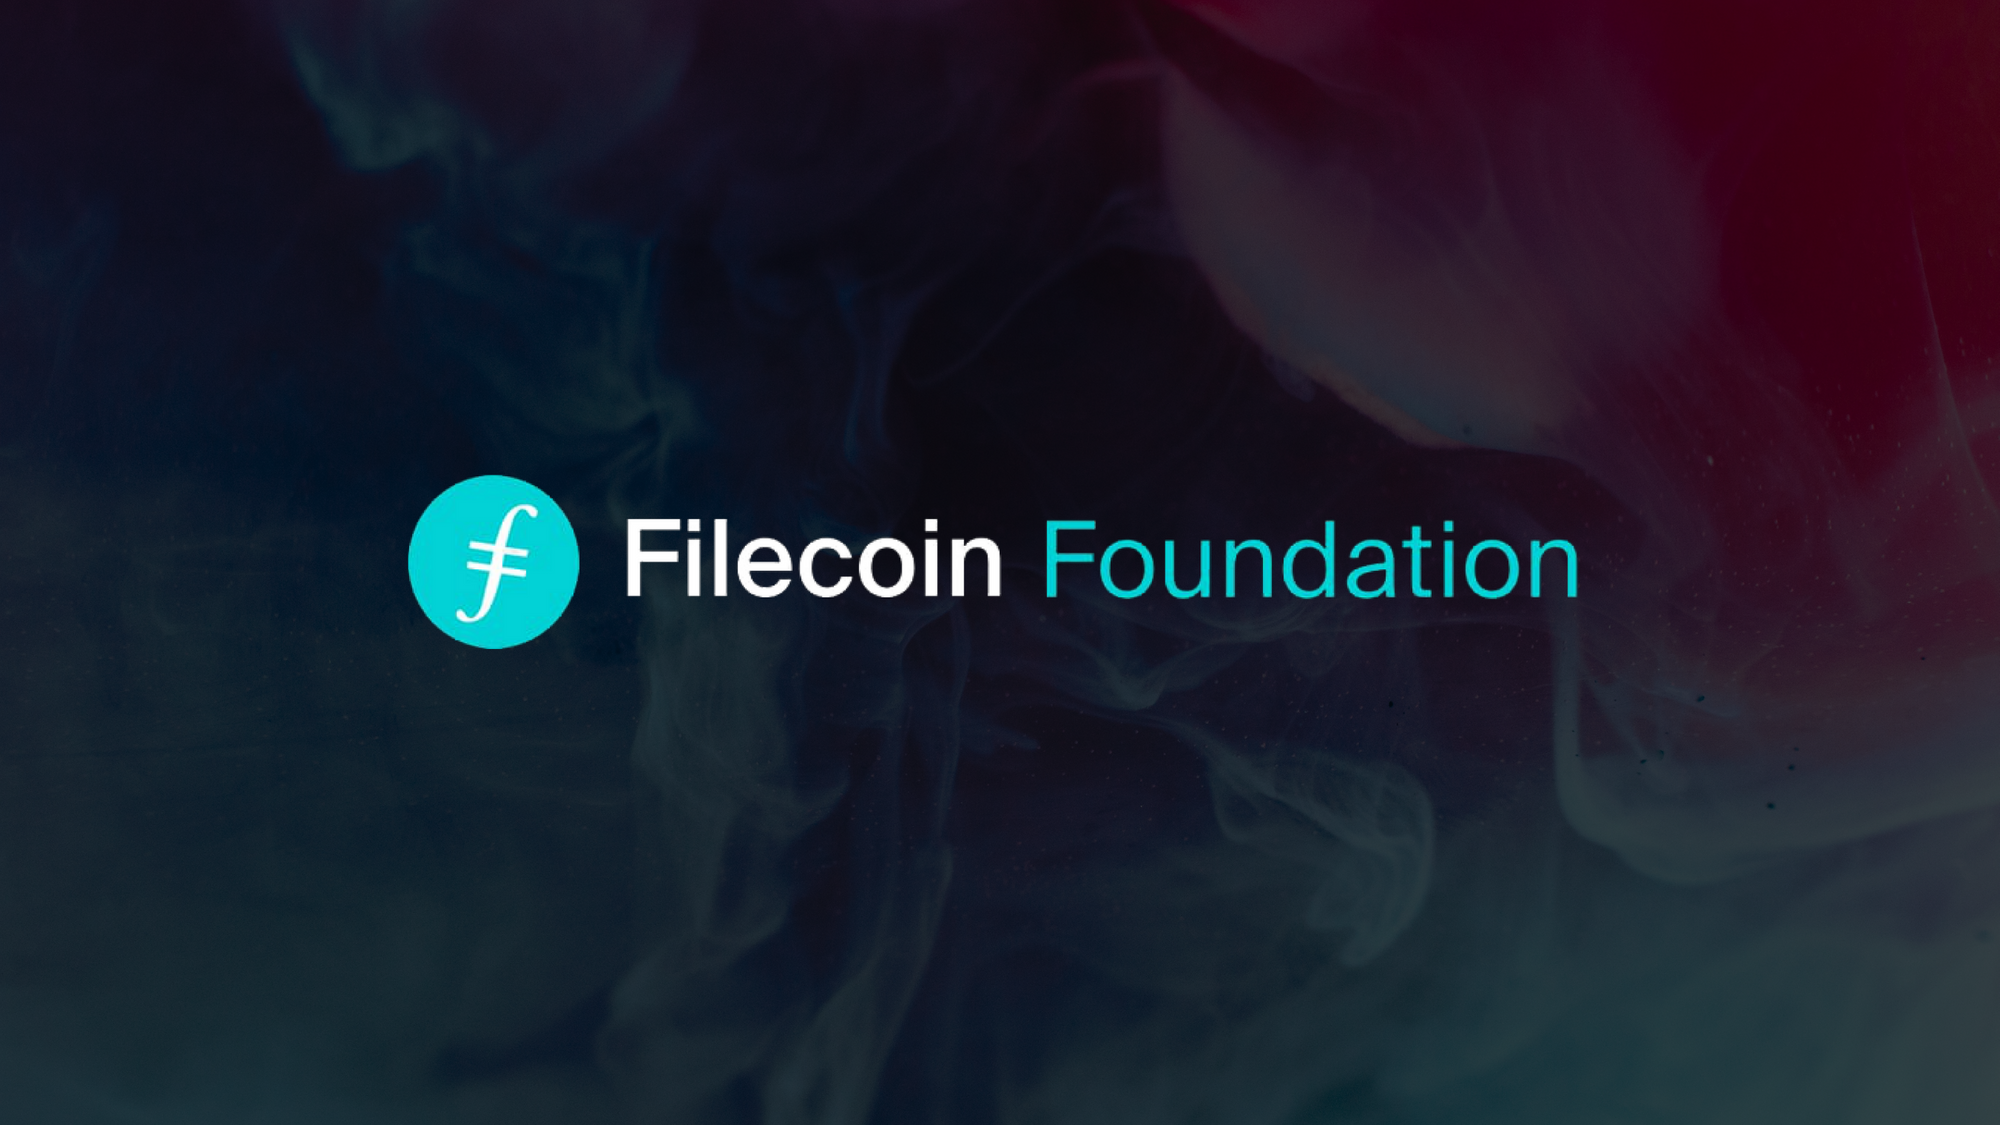 Danny O'Brien on the Filecoin Foundation and Redecentralizing the Web